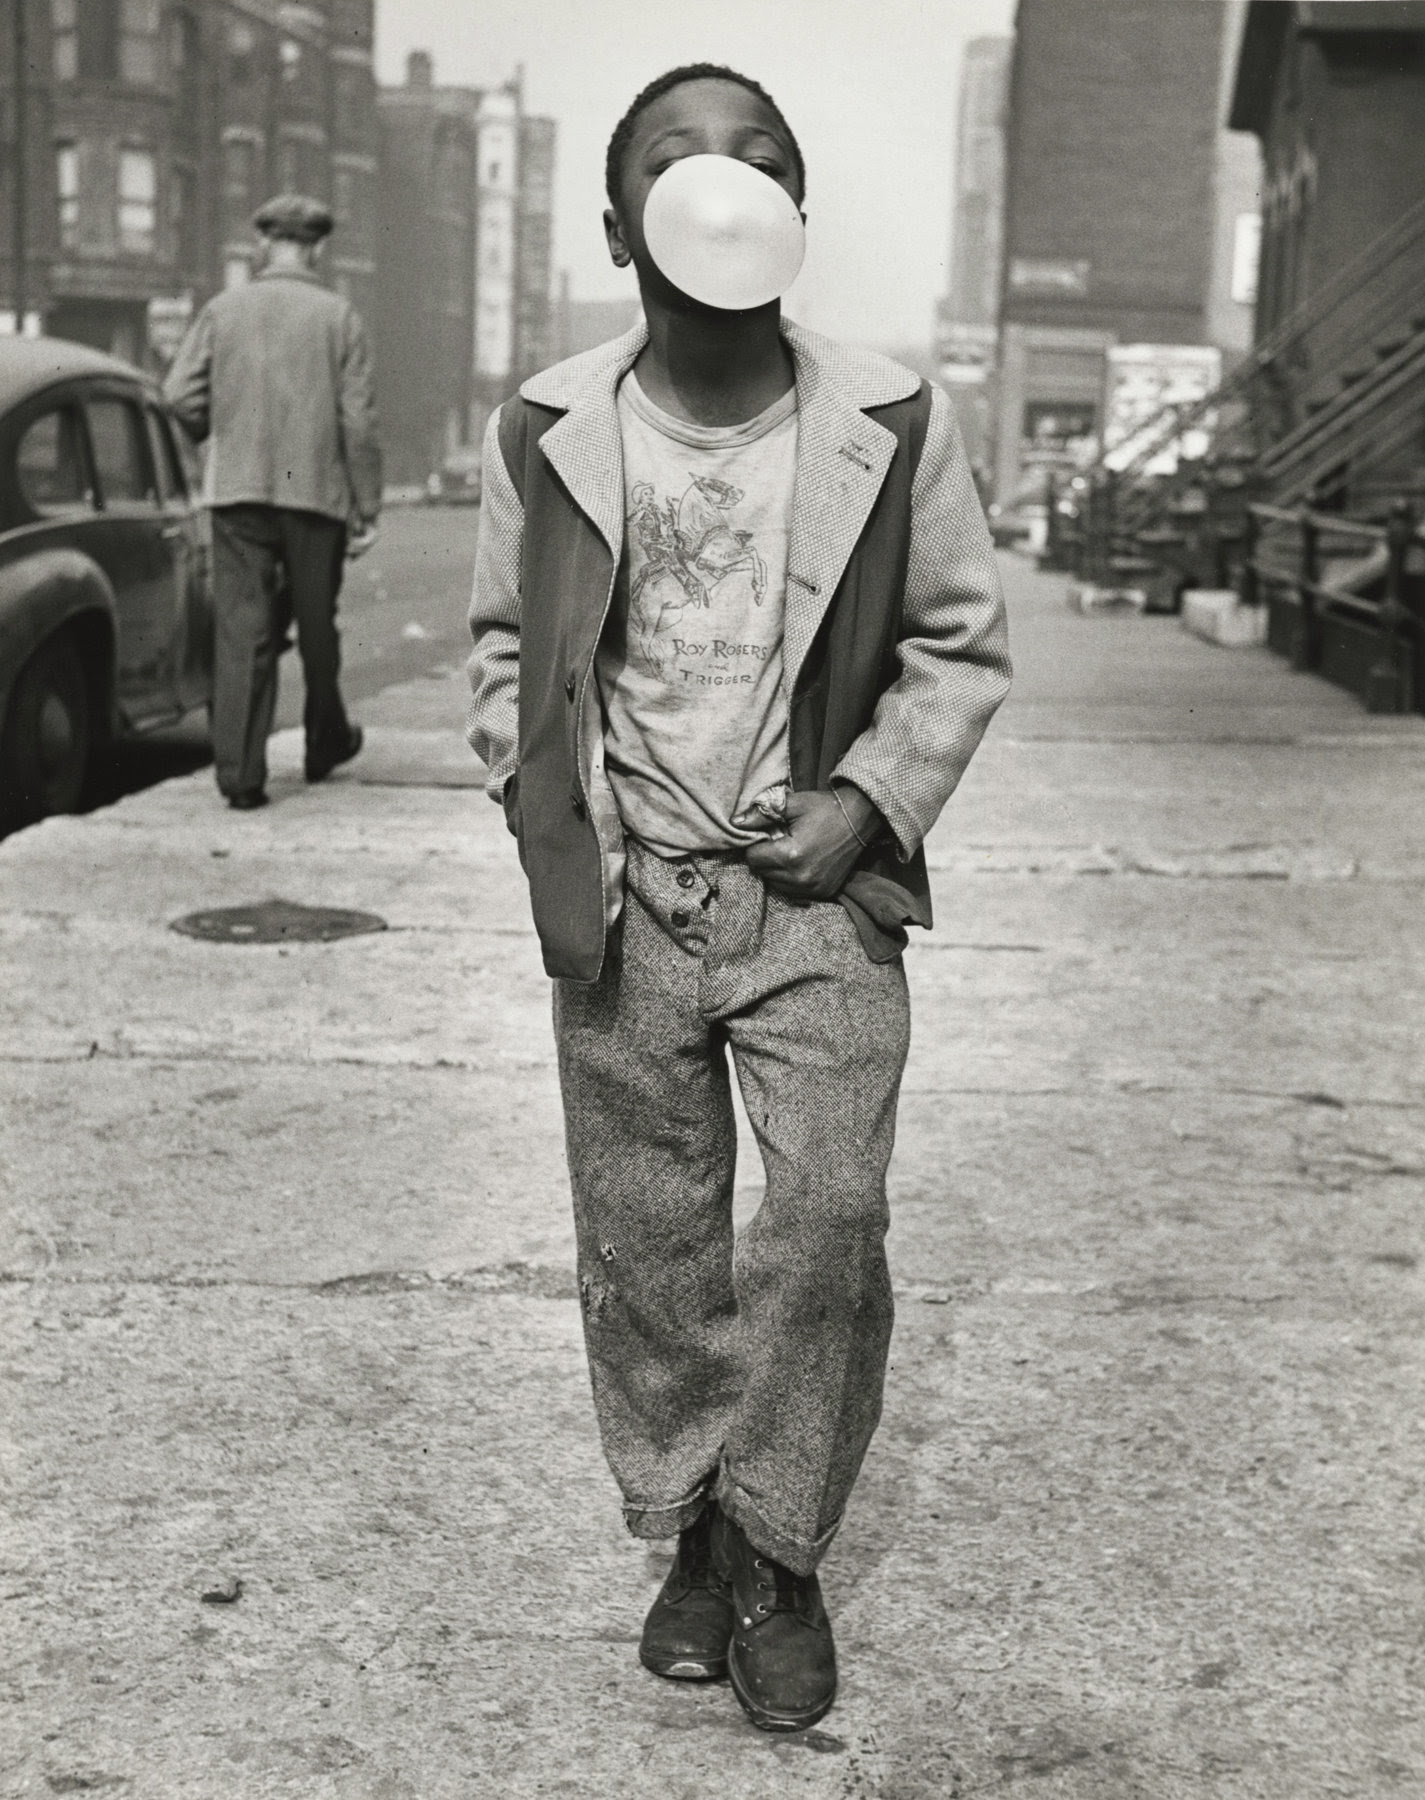 ‍© Marvin Newman, Boy Blowing Bubble Gum, Chicago, 1951 | Courtesy of Howard Greenberg Gallery